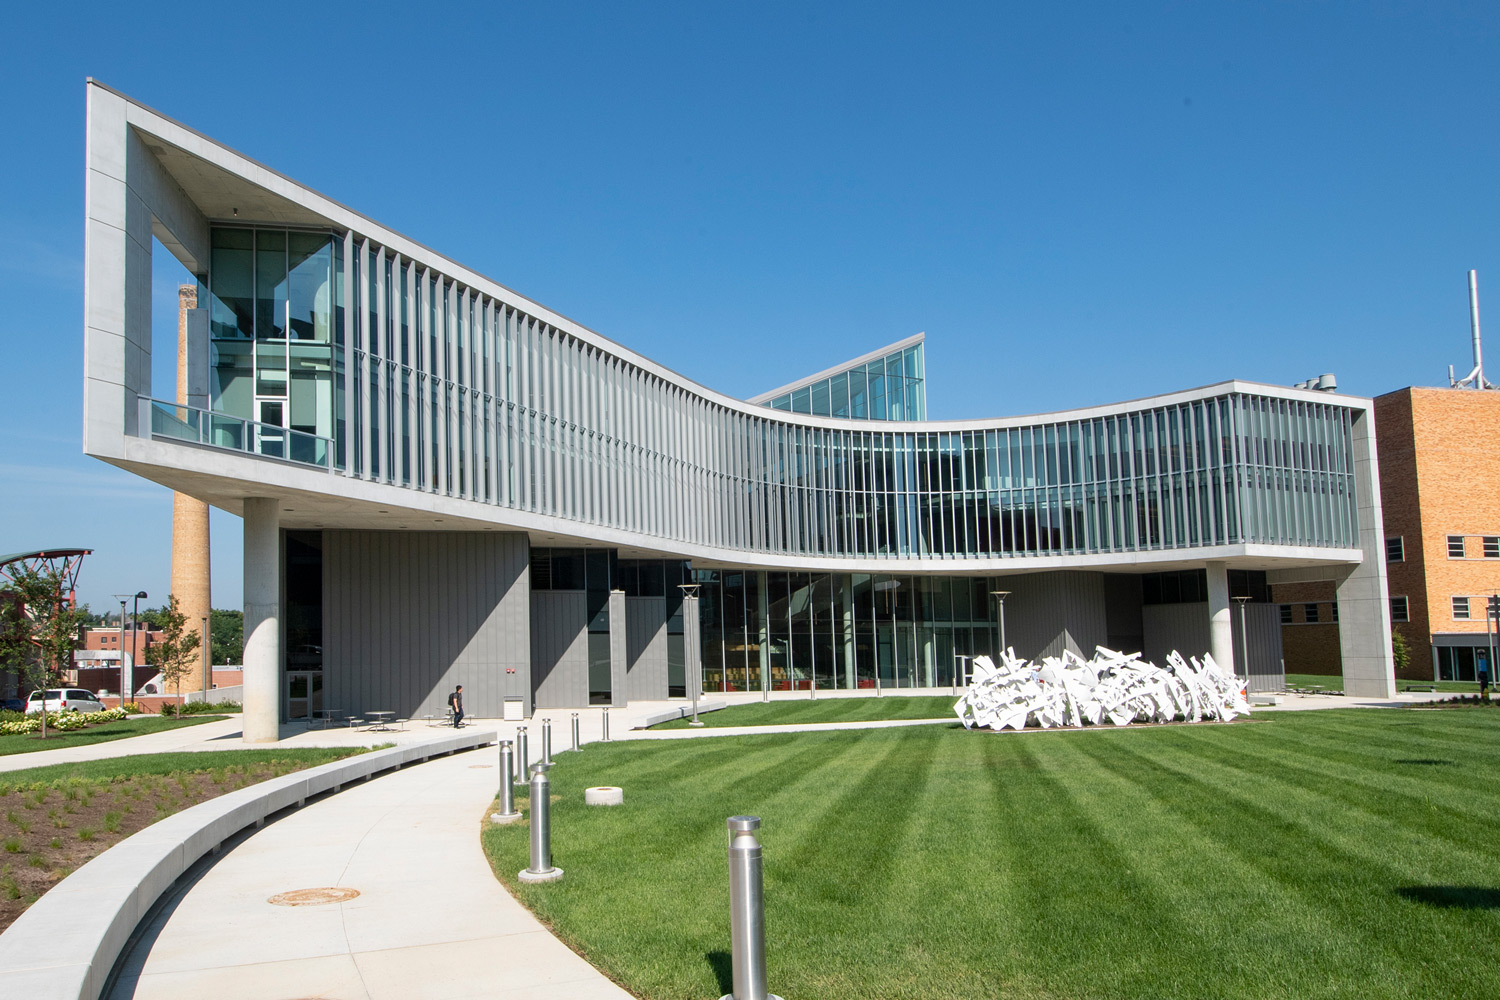 Exterior view of the new Health Sciences Building